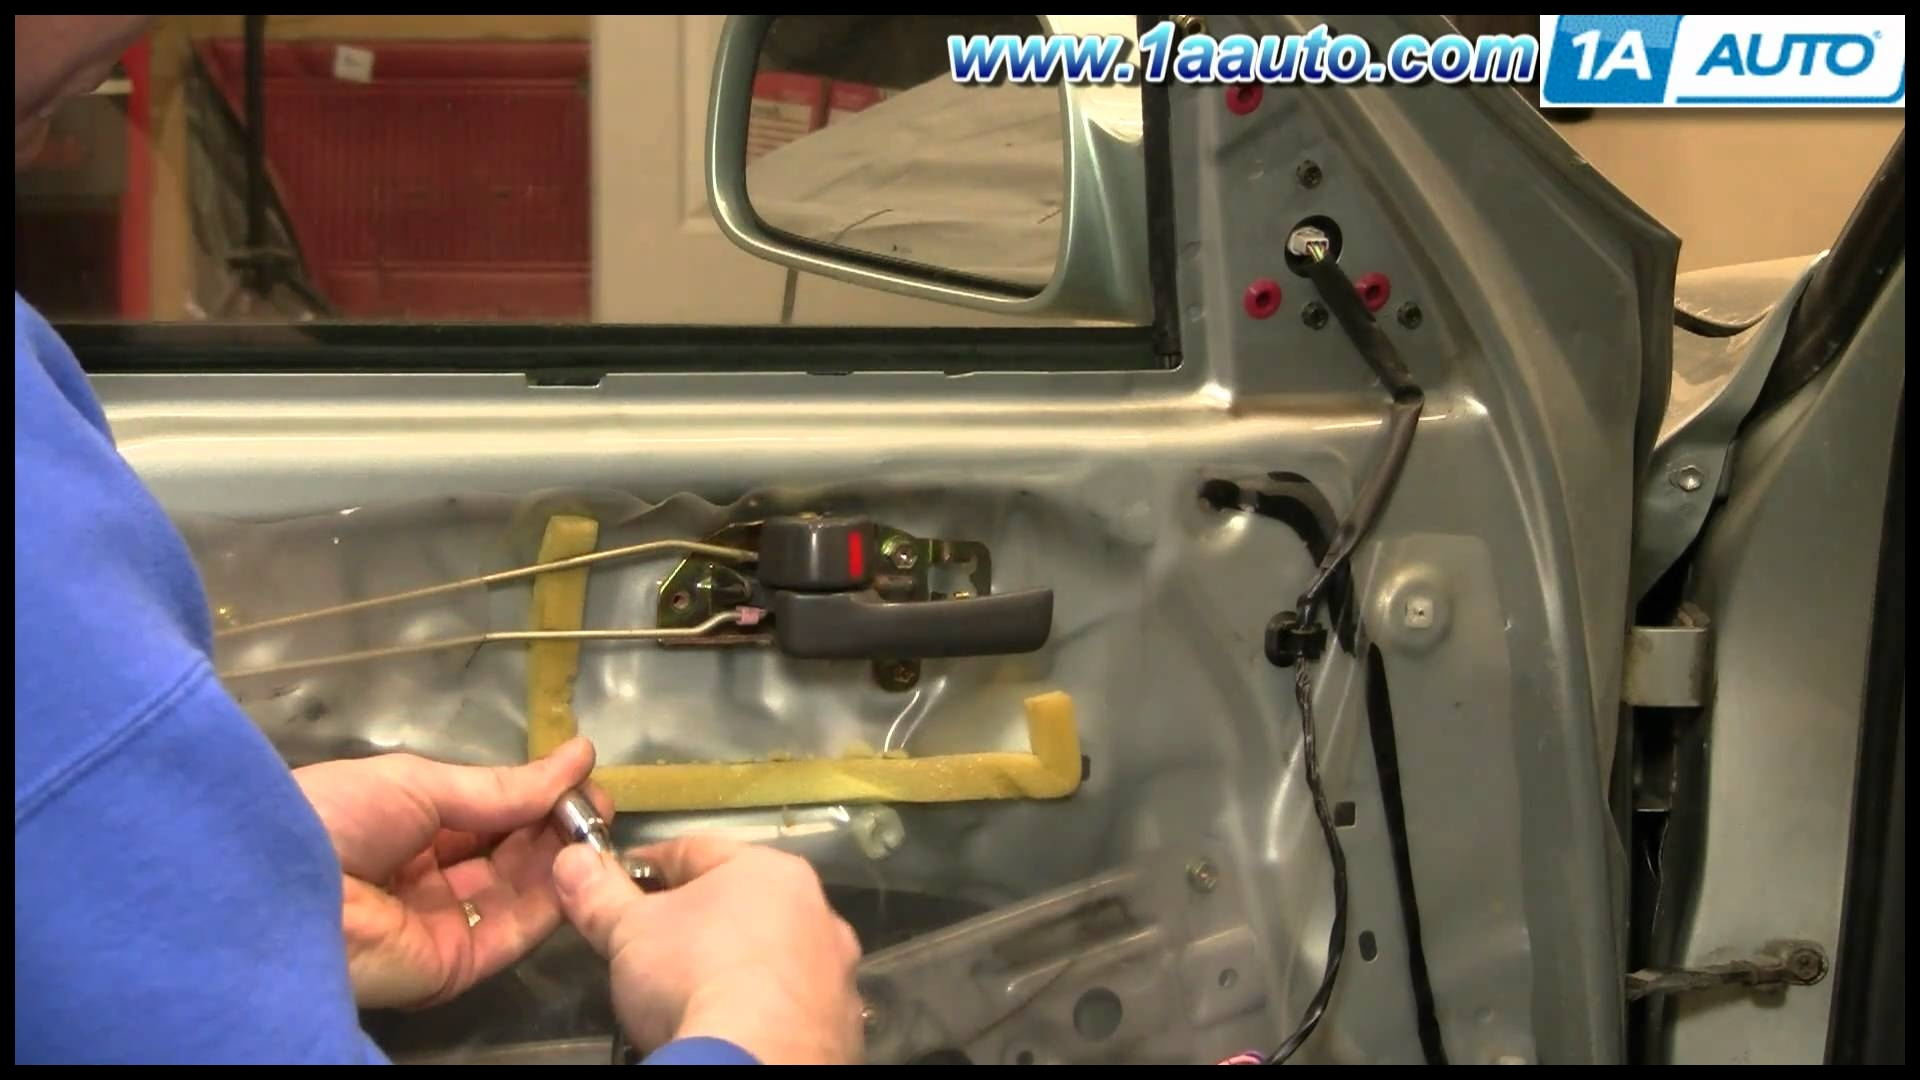 How To Install Replace Front Inside Door Handle Toyota Camry 92 96 1AAuto